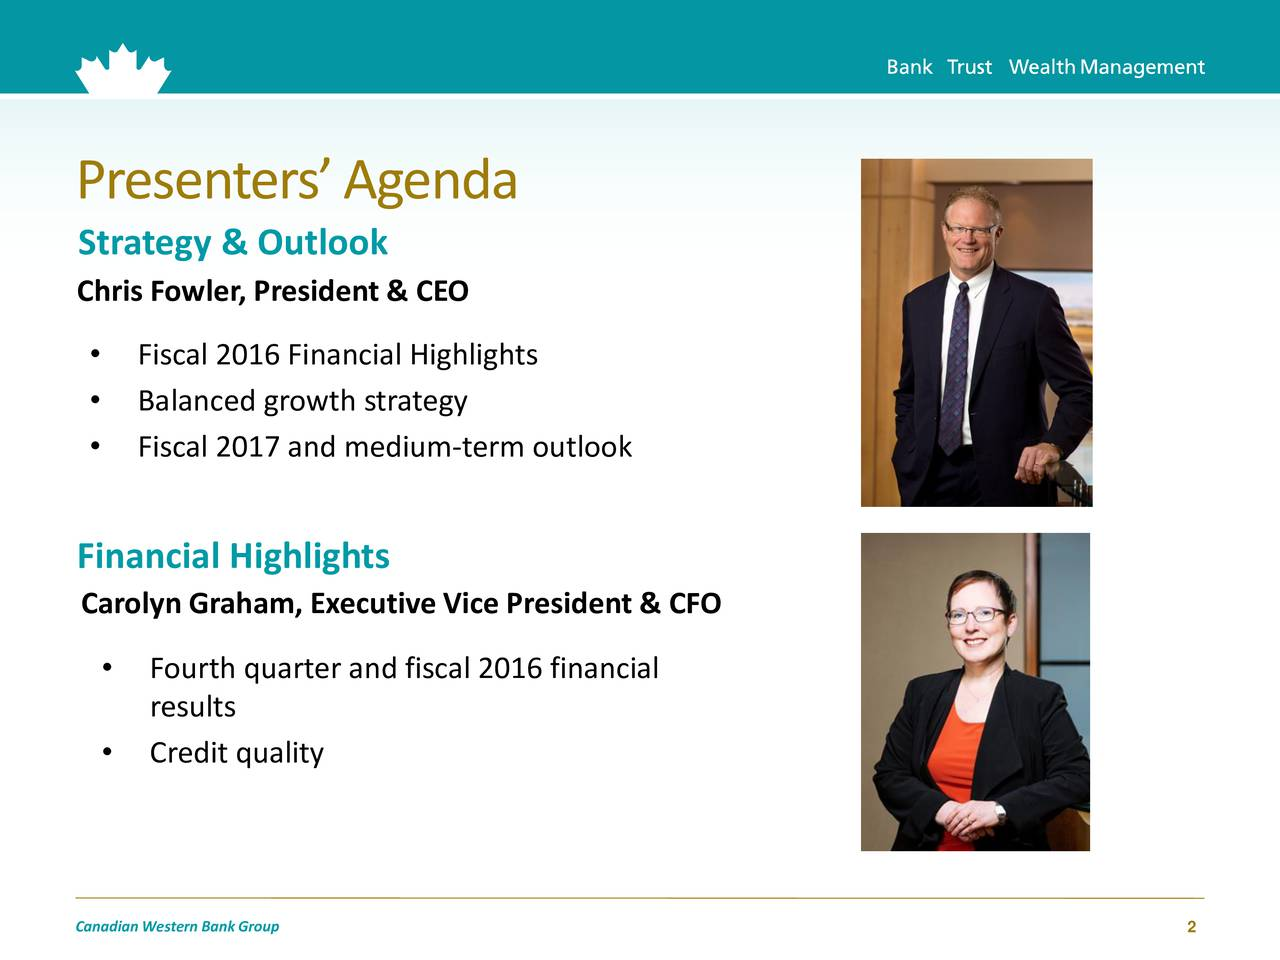 Strategy & Outlook Chris Fowler, President & CEO Fiscal 2016 Financial Highlights Balanced growth strategy Fiscal 2017 and medium-term outlook Financial Highlights Carolyn Graham, Executive Vice President & CFO Fourth quarter and fiscal 2016 financial results Credit quality CanadianWestern Bank Group 2